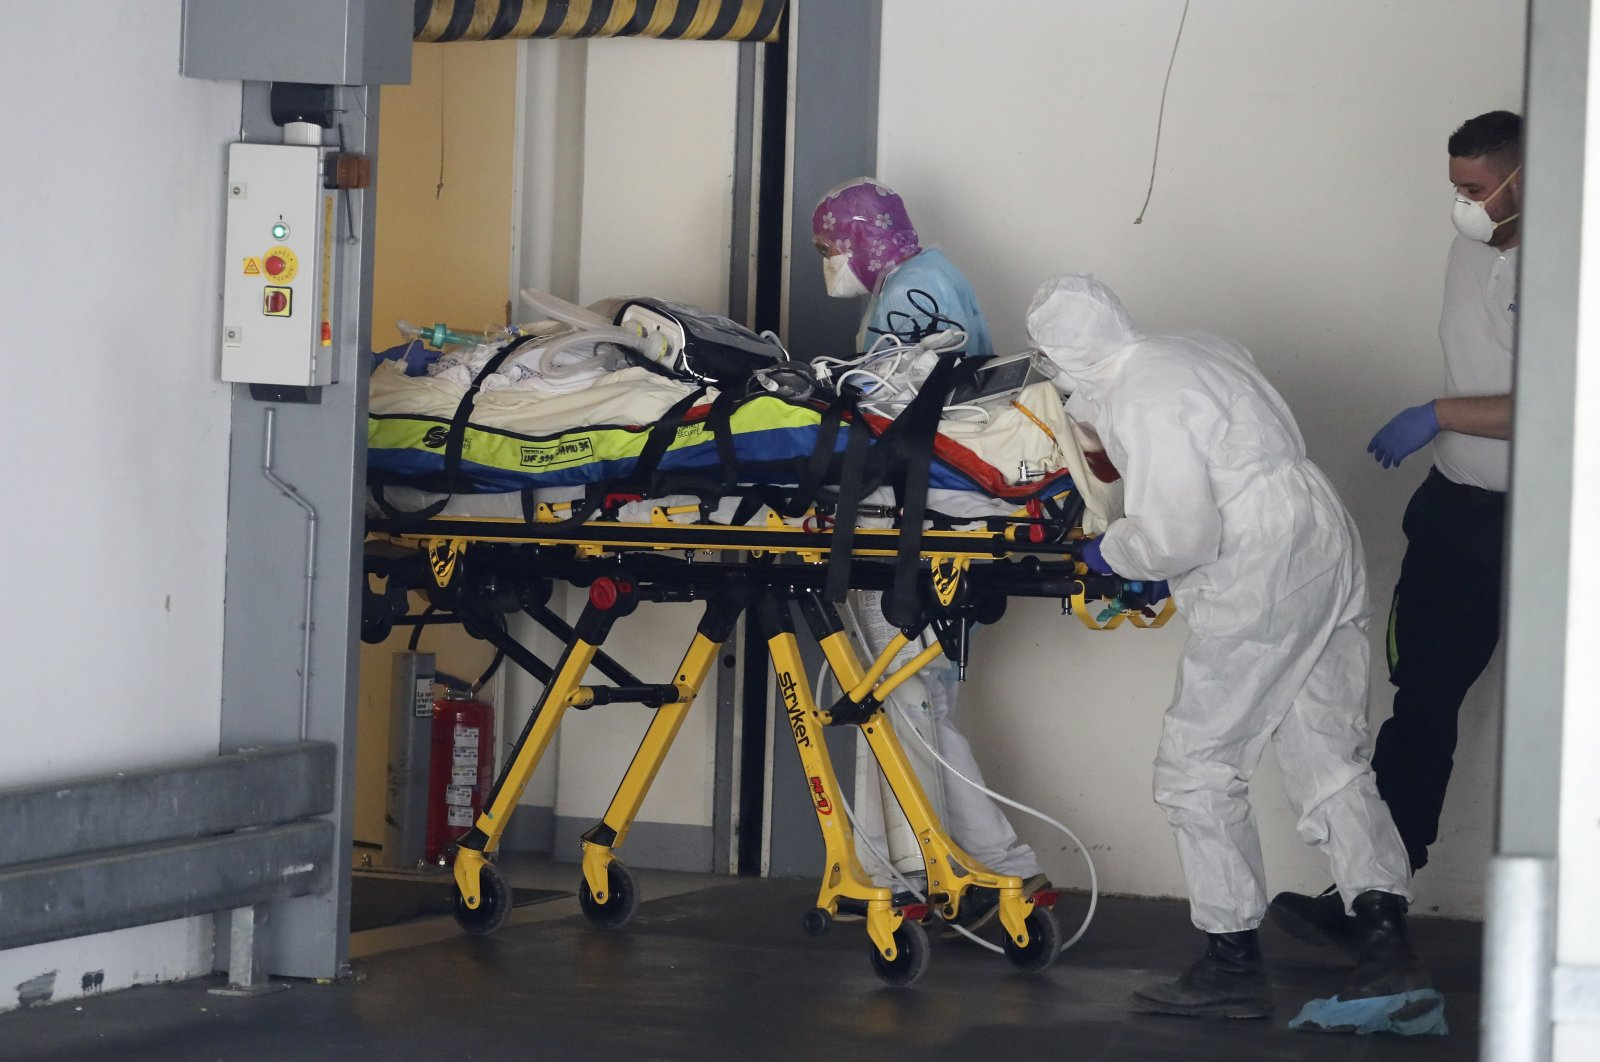 A patient infected with the Covid-19 virus is admitted in an hospital Wednesday April 1, 2020 in Rennes, western France. (AP Photo)